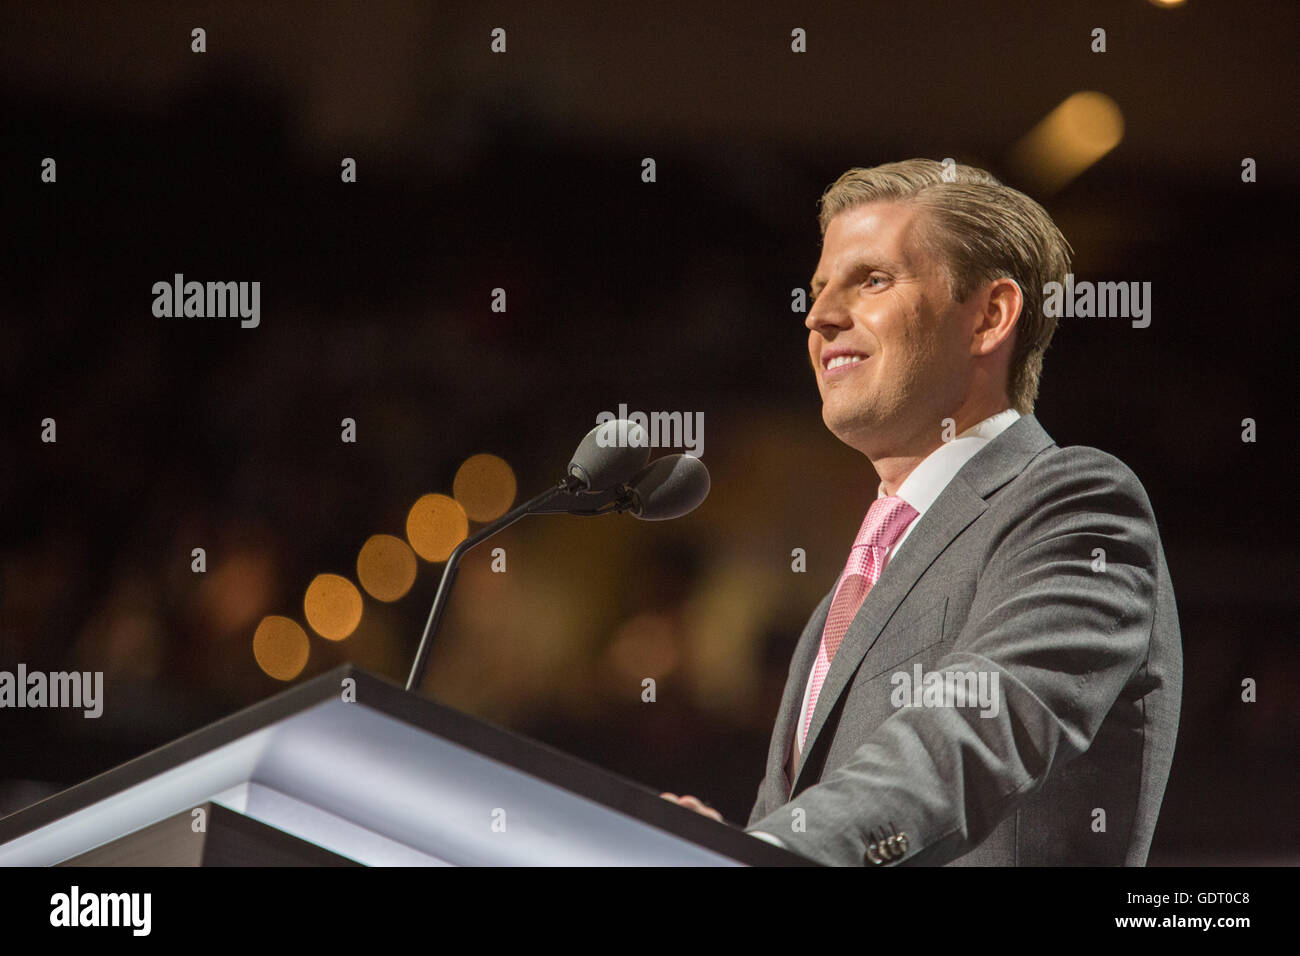 Cleveland, Ohio, USA; July 20, 2016: Eric Trump, son of Donald Trump, speaks at Republican National Convention. - Stock Image